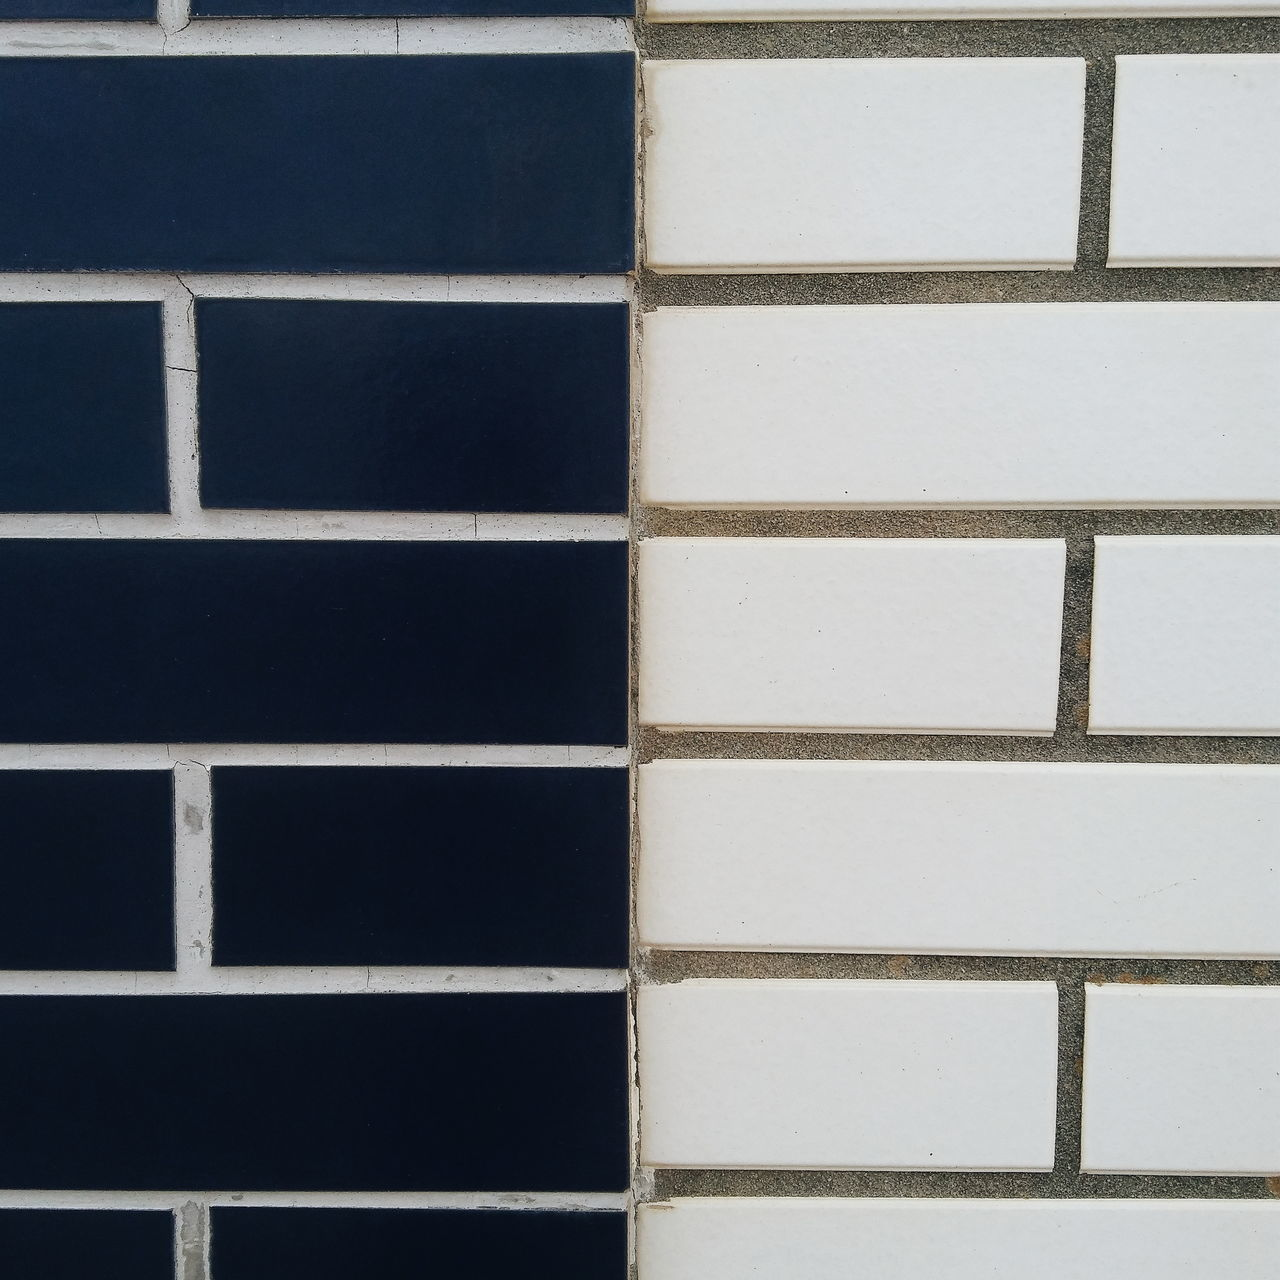 FULL FRAME SHOT OF TILED WALL WITH SHADOW